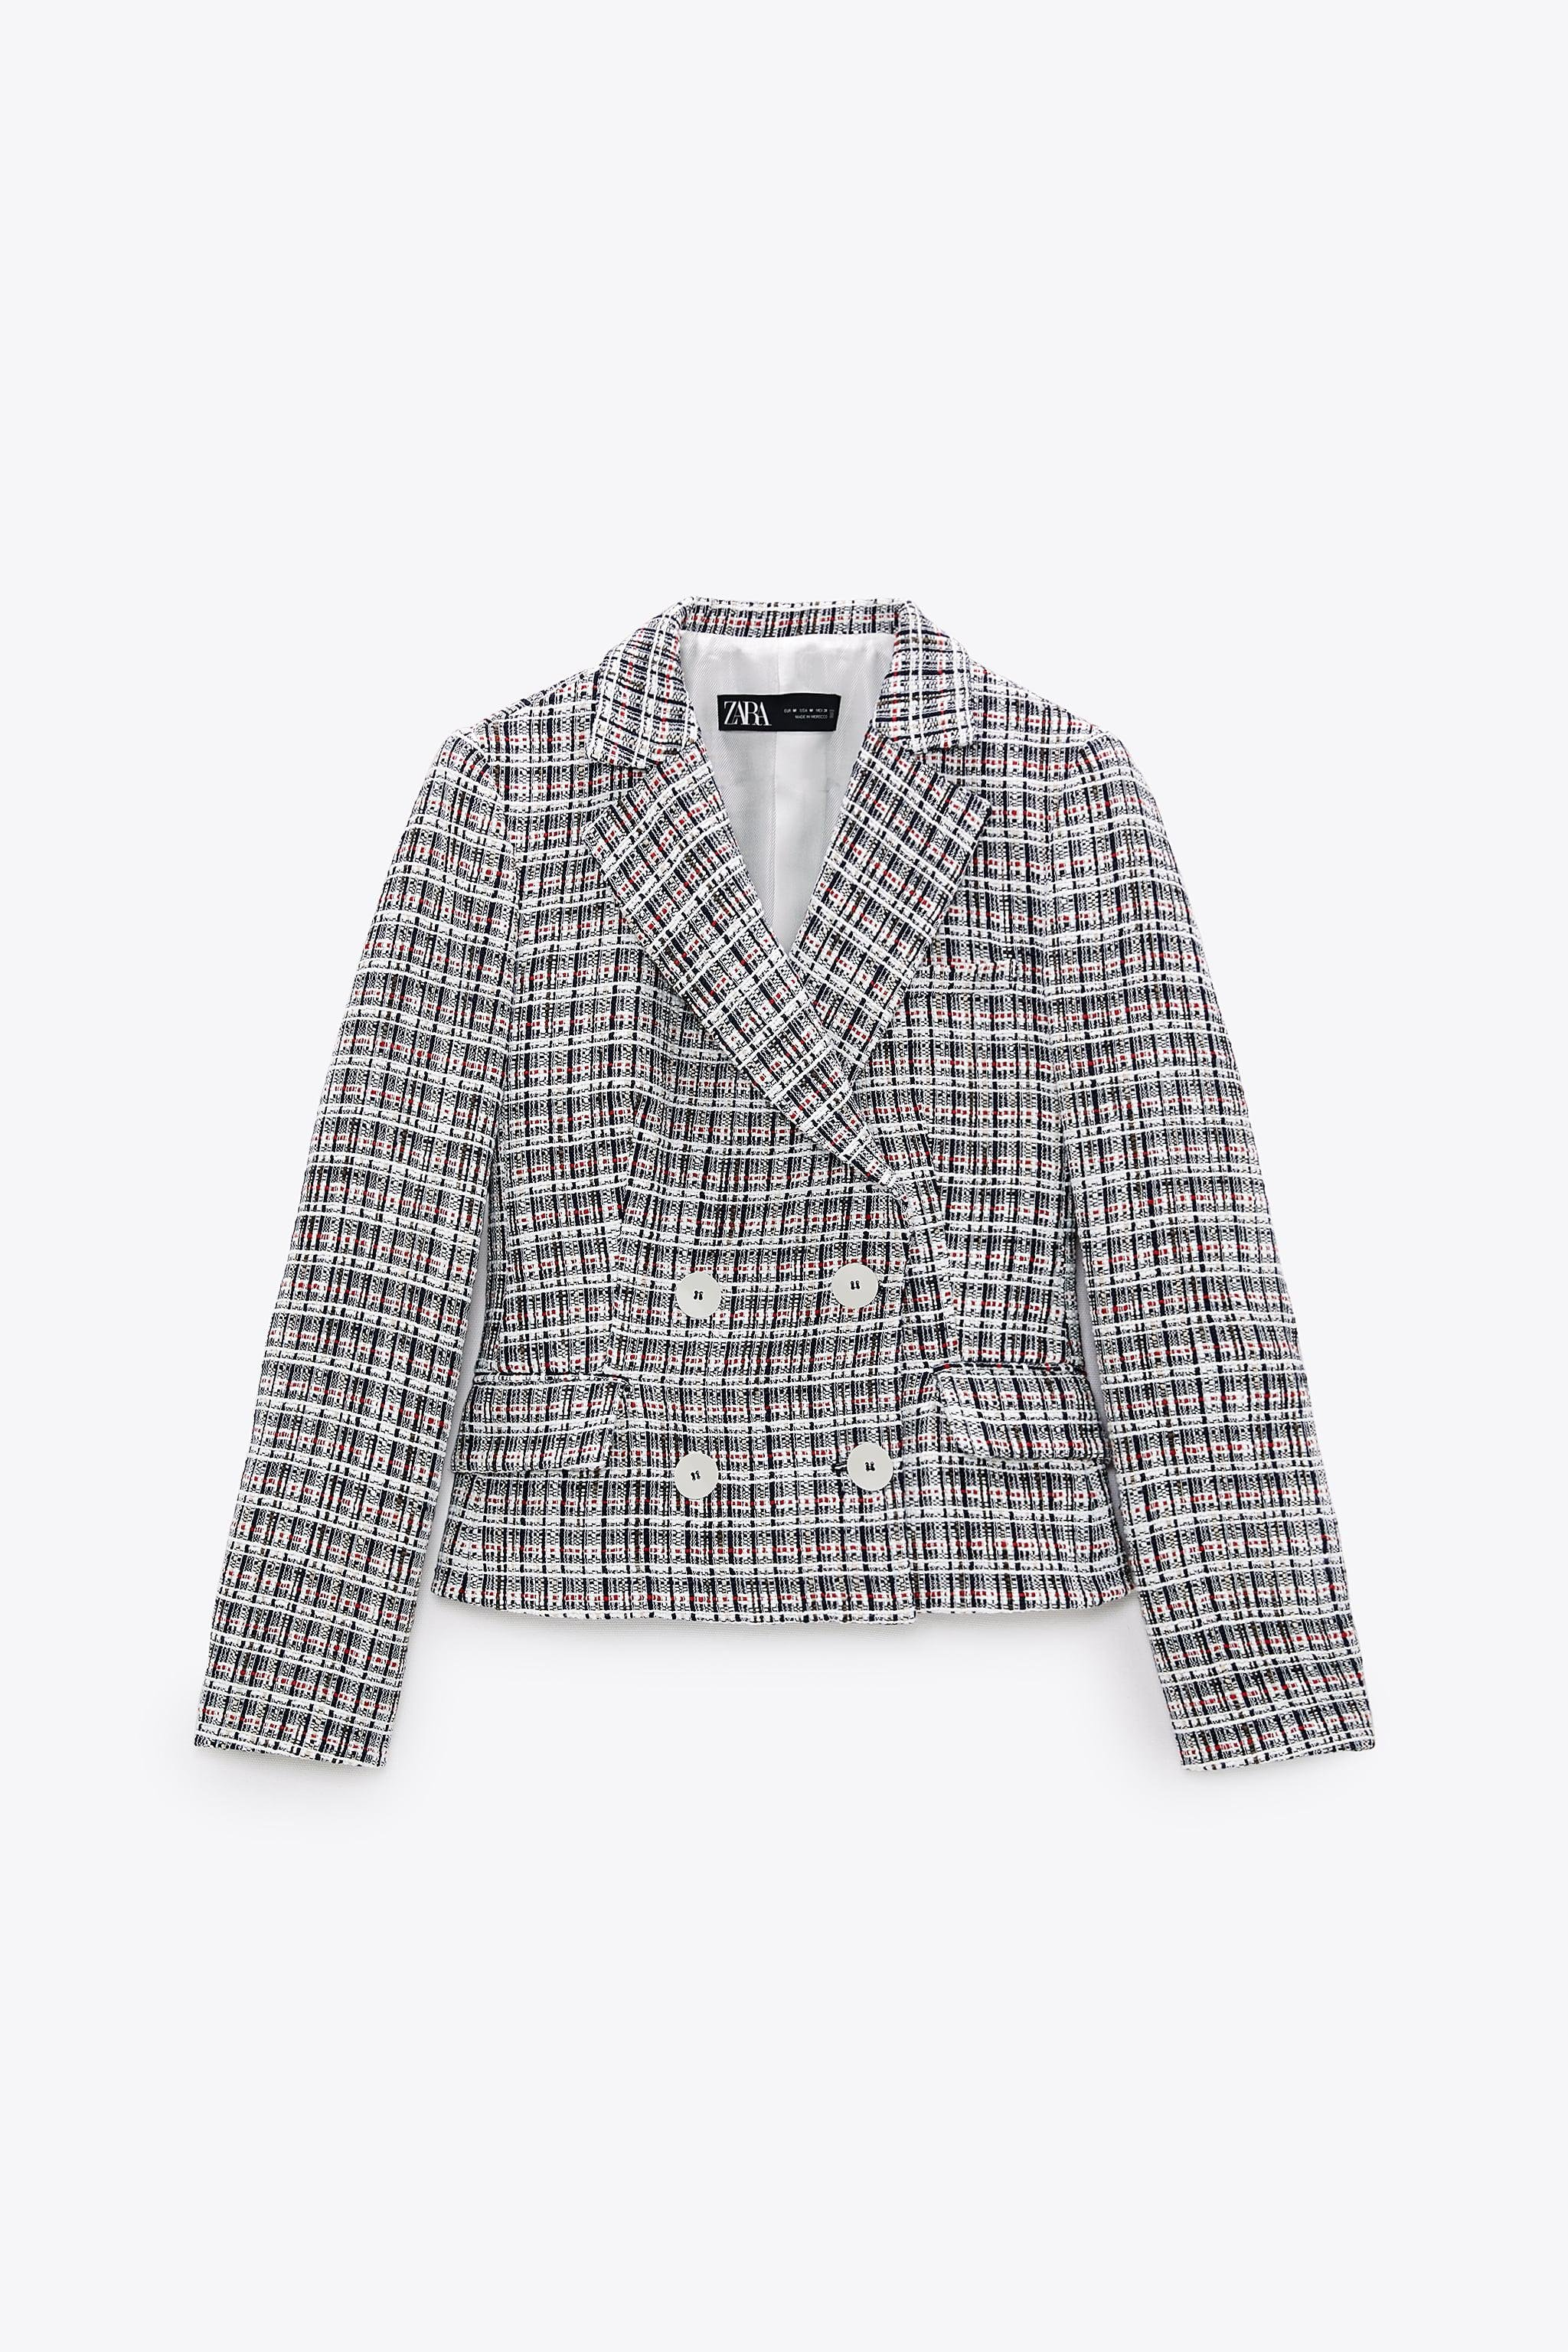 DOUBLE BREASTED TEXTURED WEAVE JACKET 8